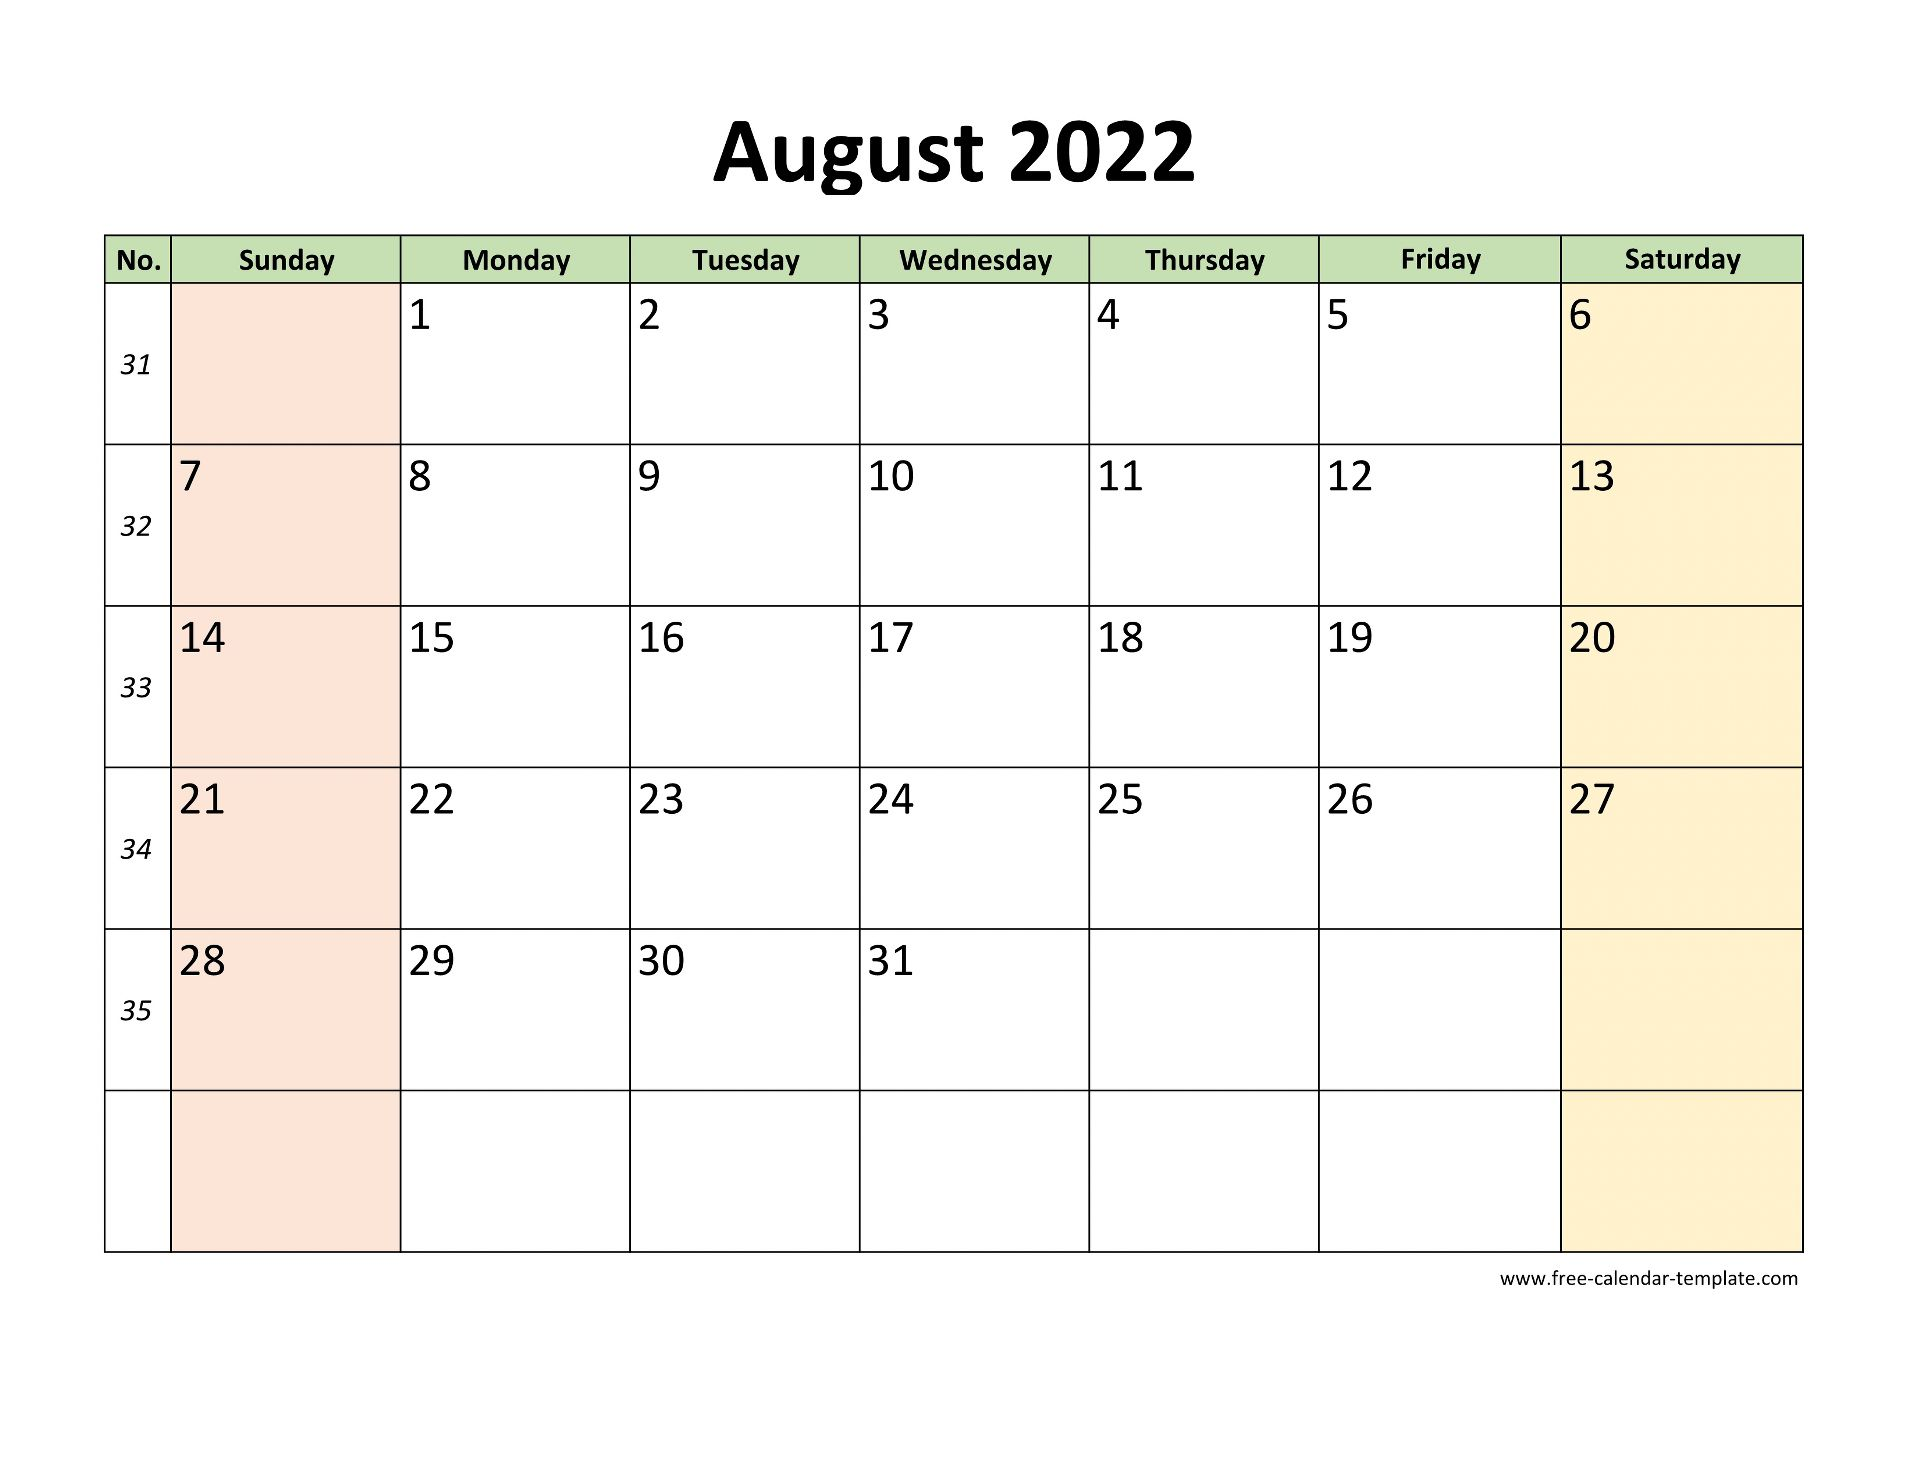 August 2022 Calendar Printable with coloring on weekend ...